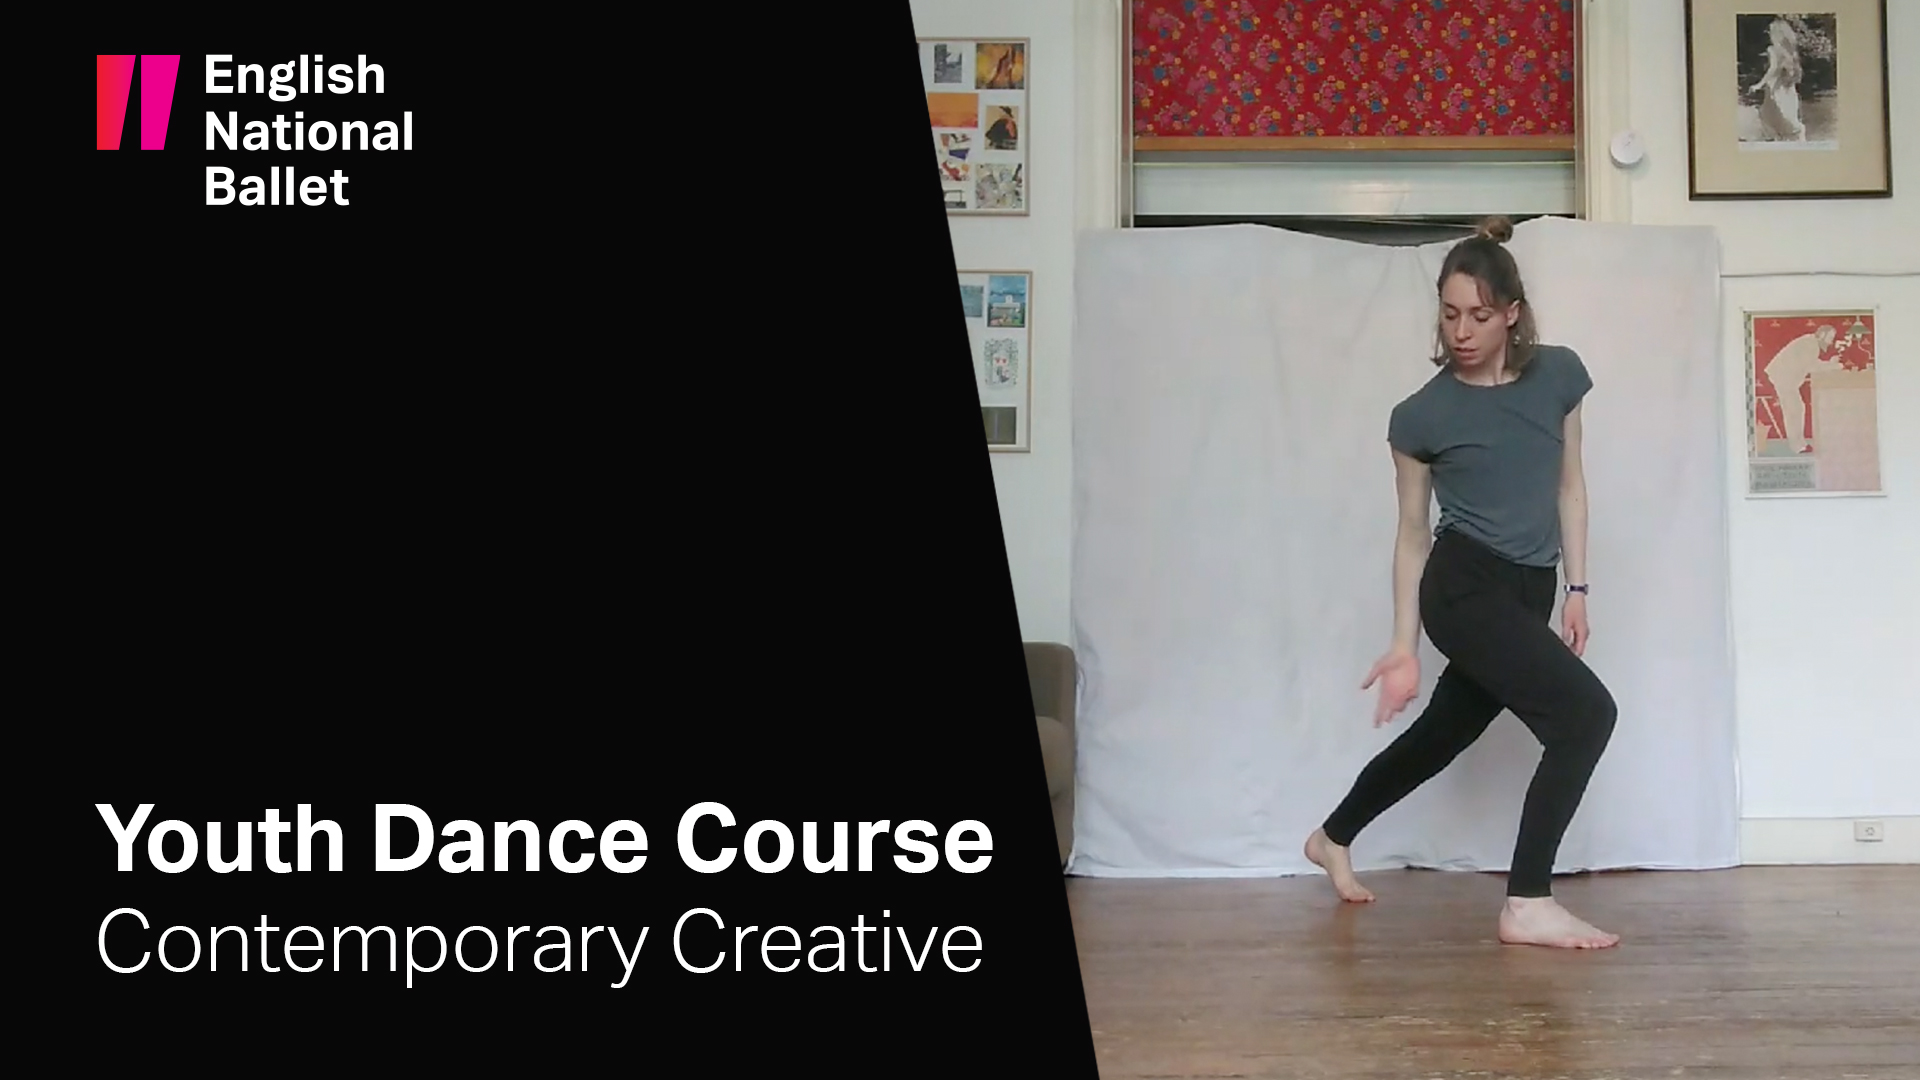 Youth Dance Course: Contemporary Creative with Naomi Cook | English National Ballet